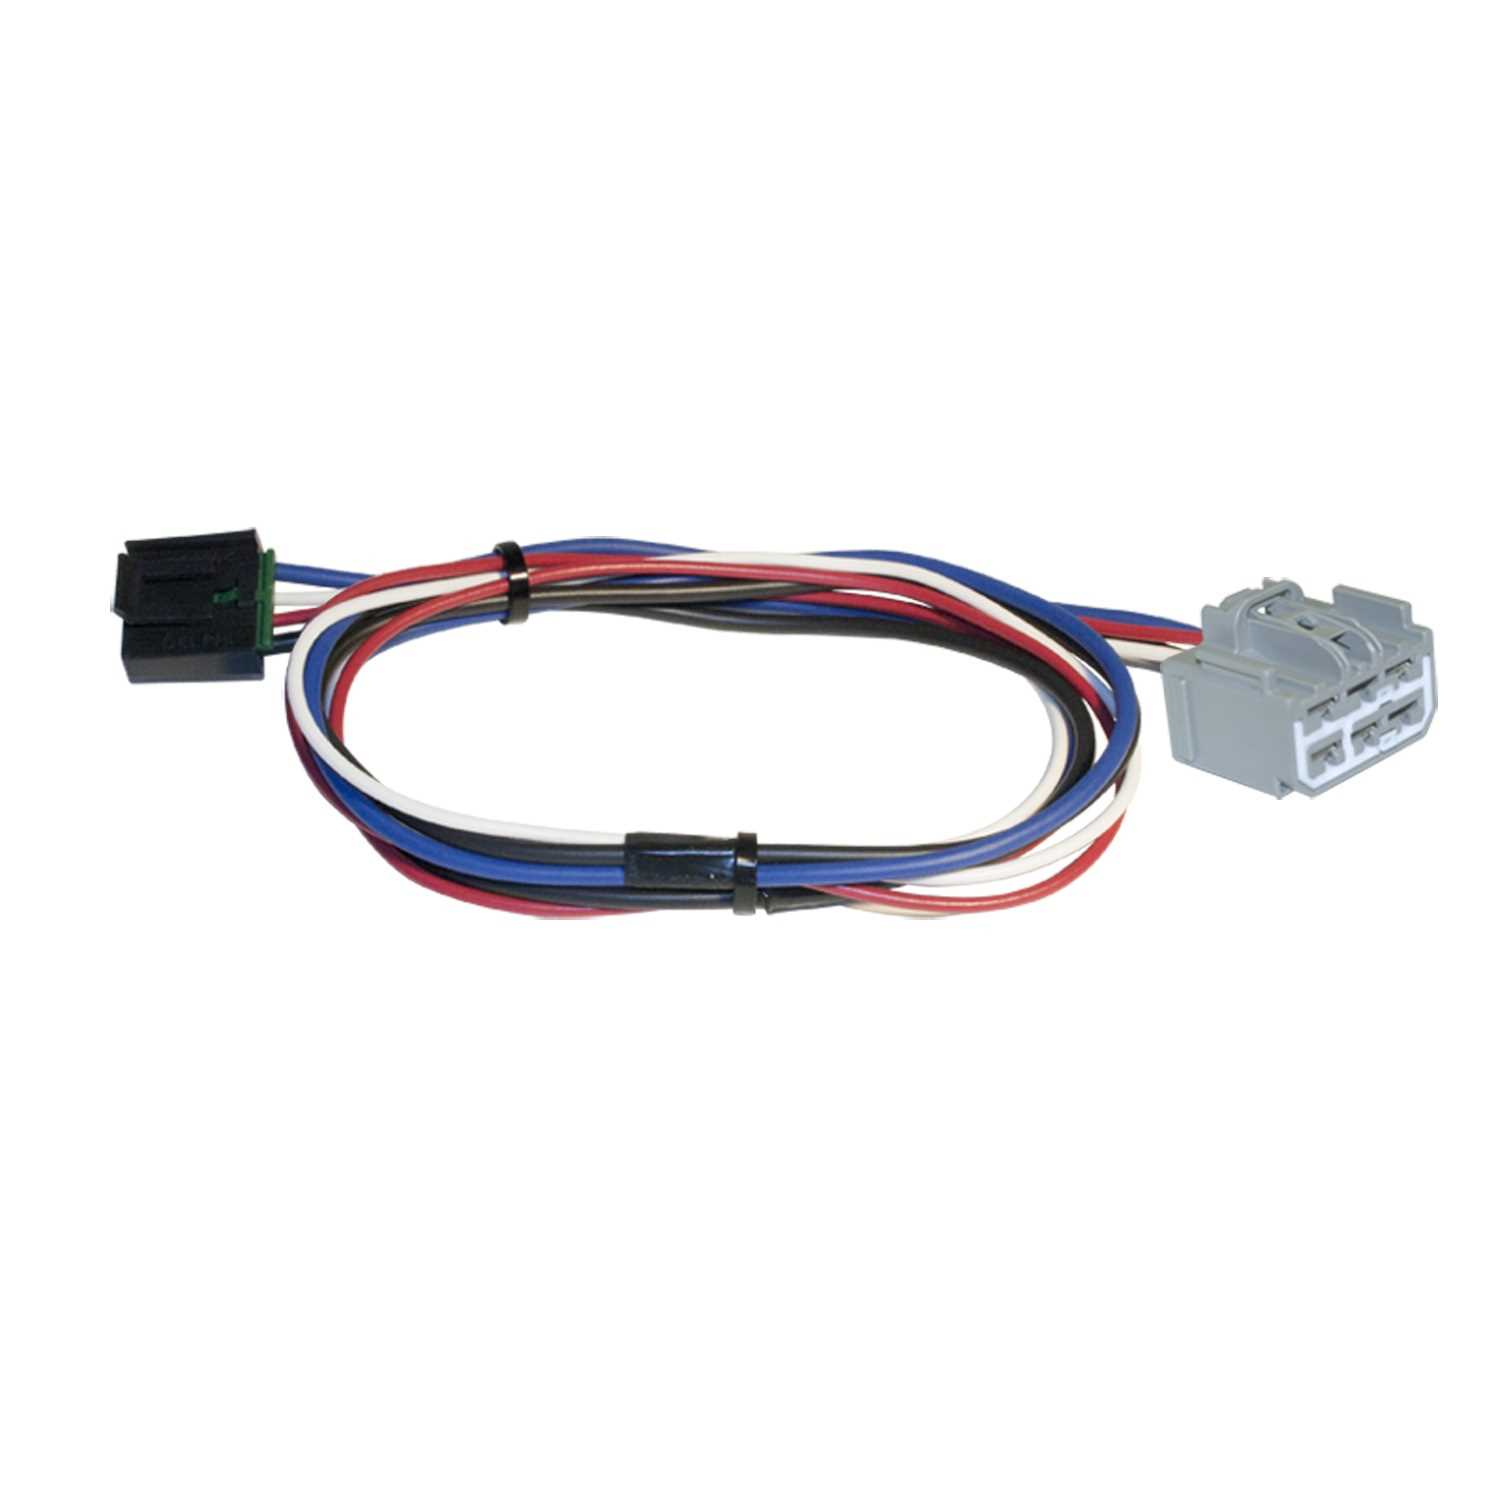 Enjoyable Trailer Wiring Harness New Vision Truck Accessories Wiring Cloud Pimpapsuggs Outletorg